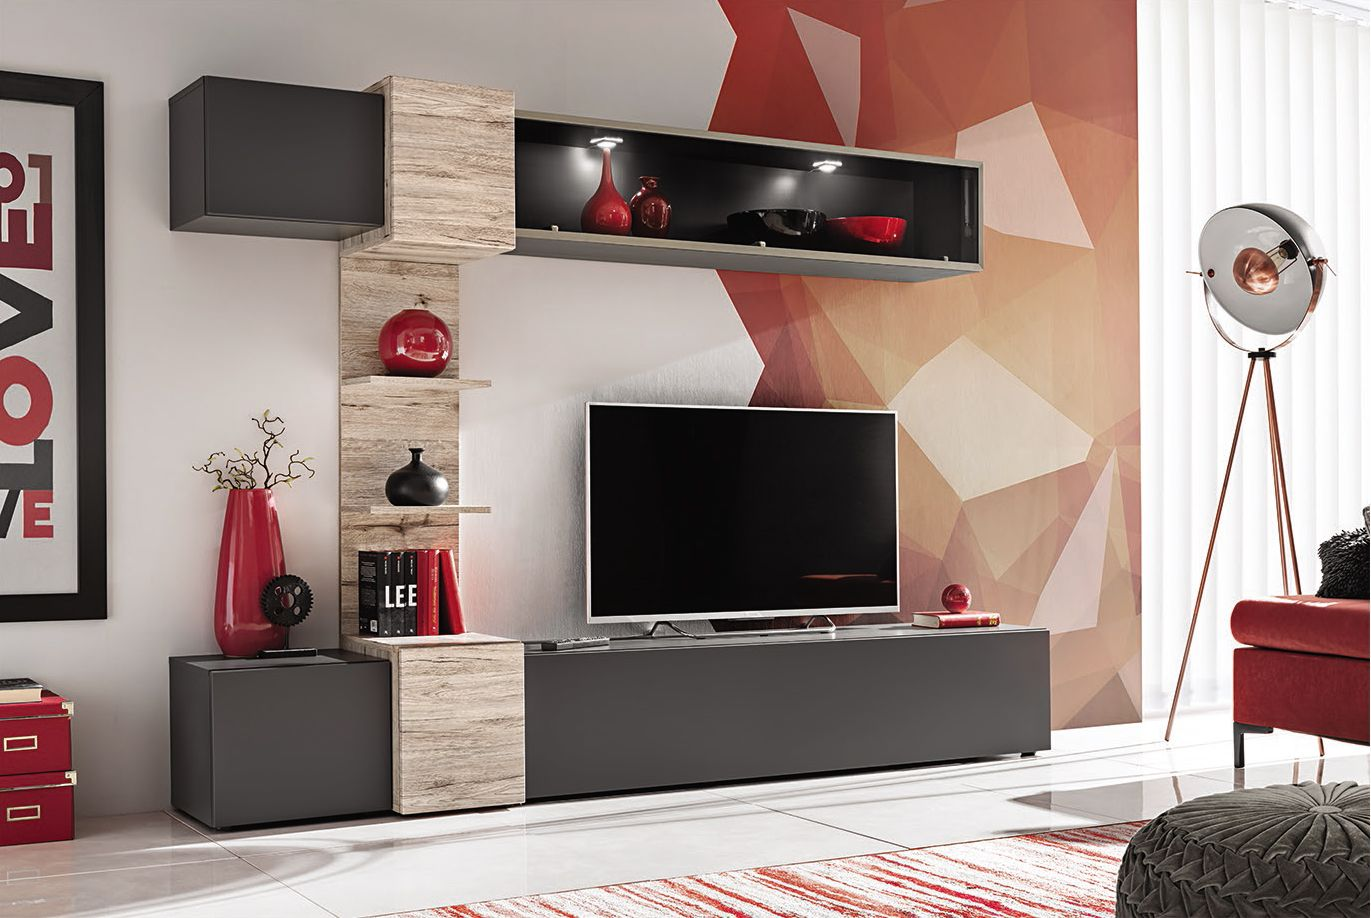 Asrio Modern Tv Wall Unit In 2020 Living Room Wall Units Modern Tv Wall Tv Wall Unit #tv #set #living #room